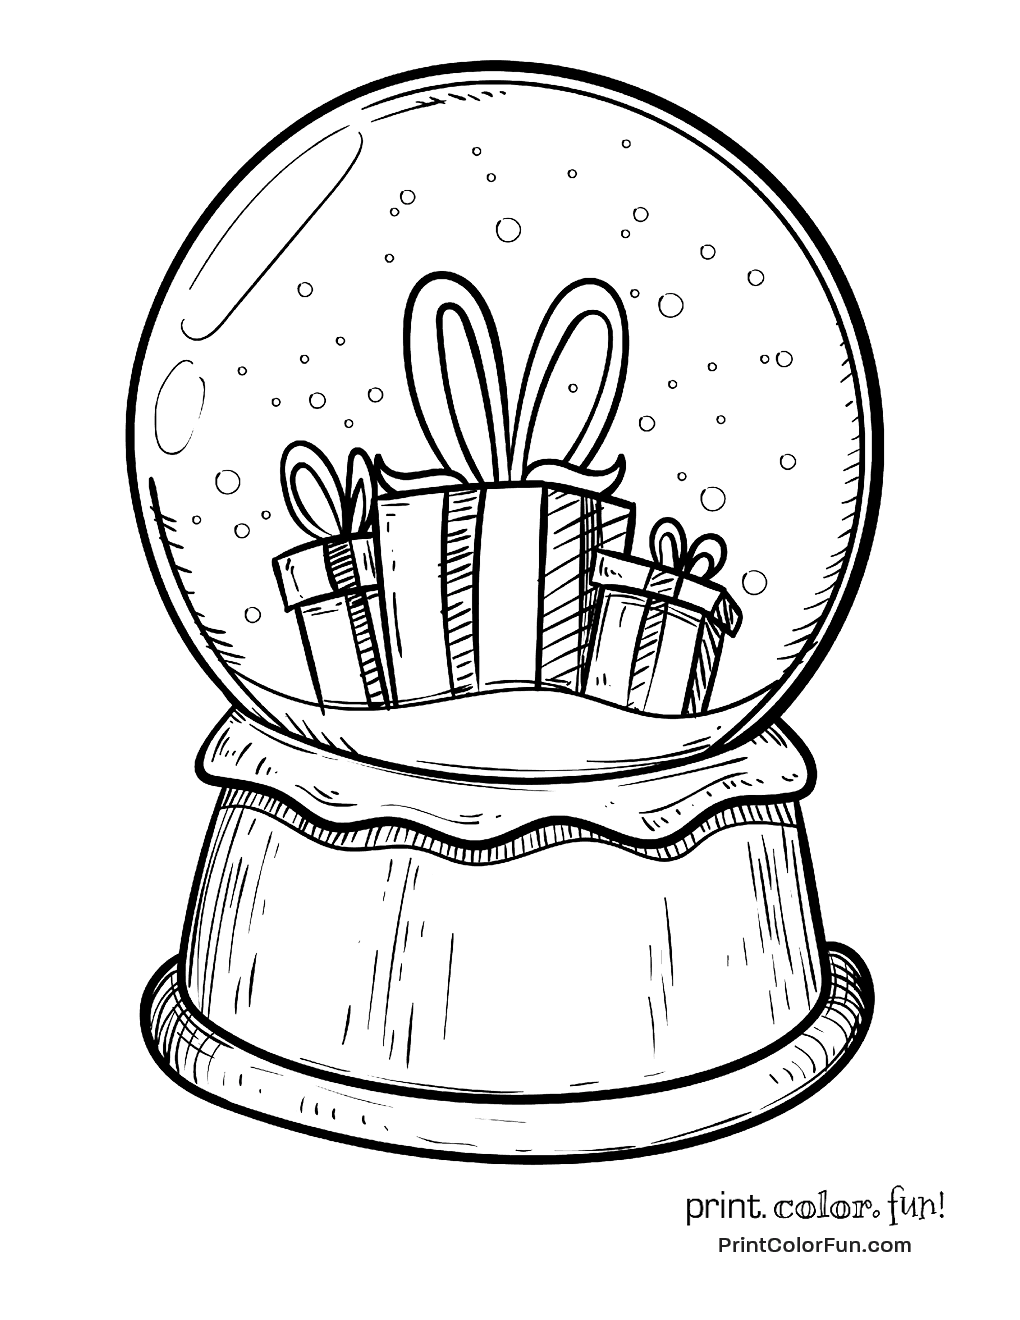 Snow globe with Christmas presents